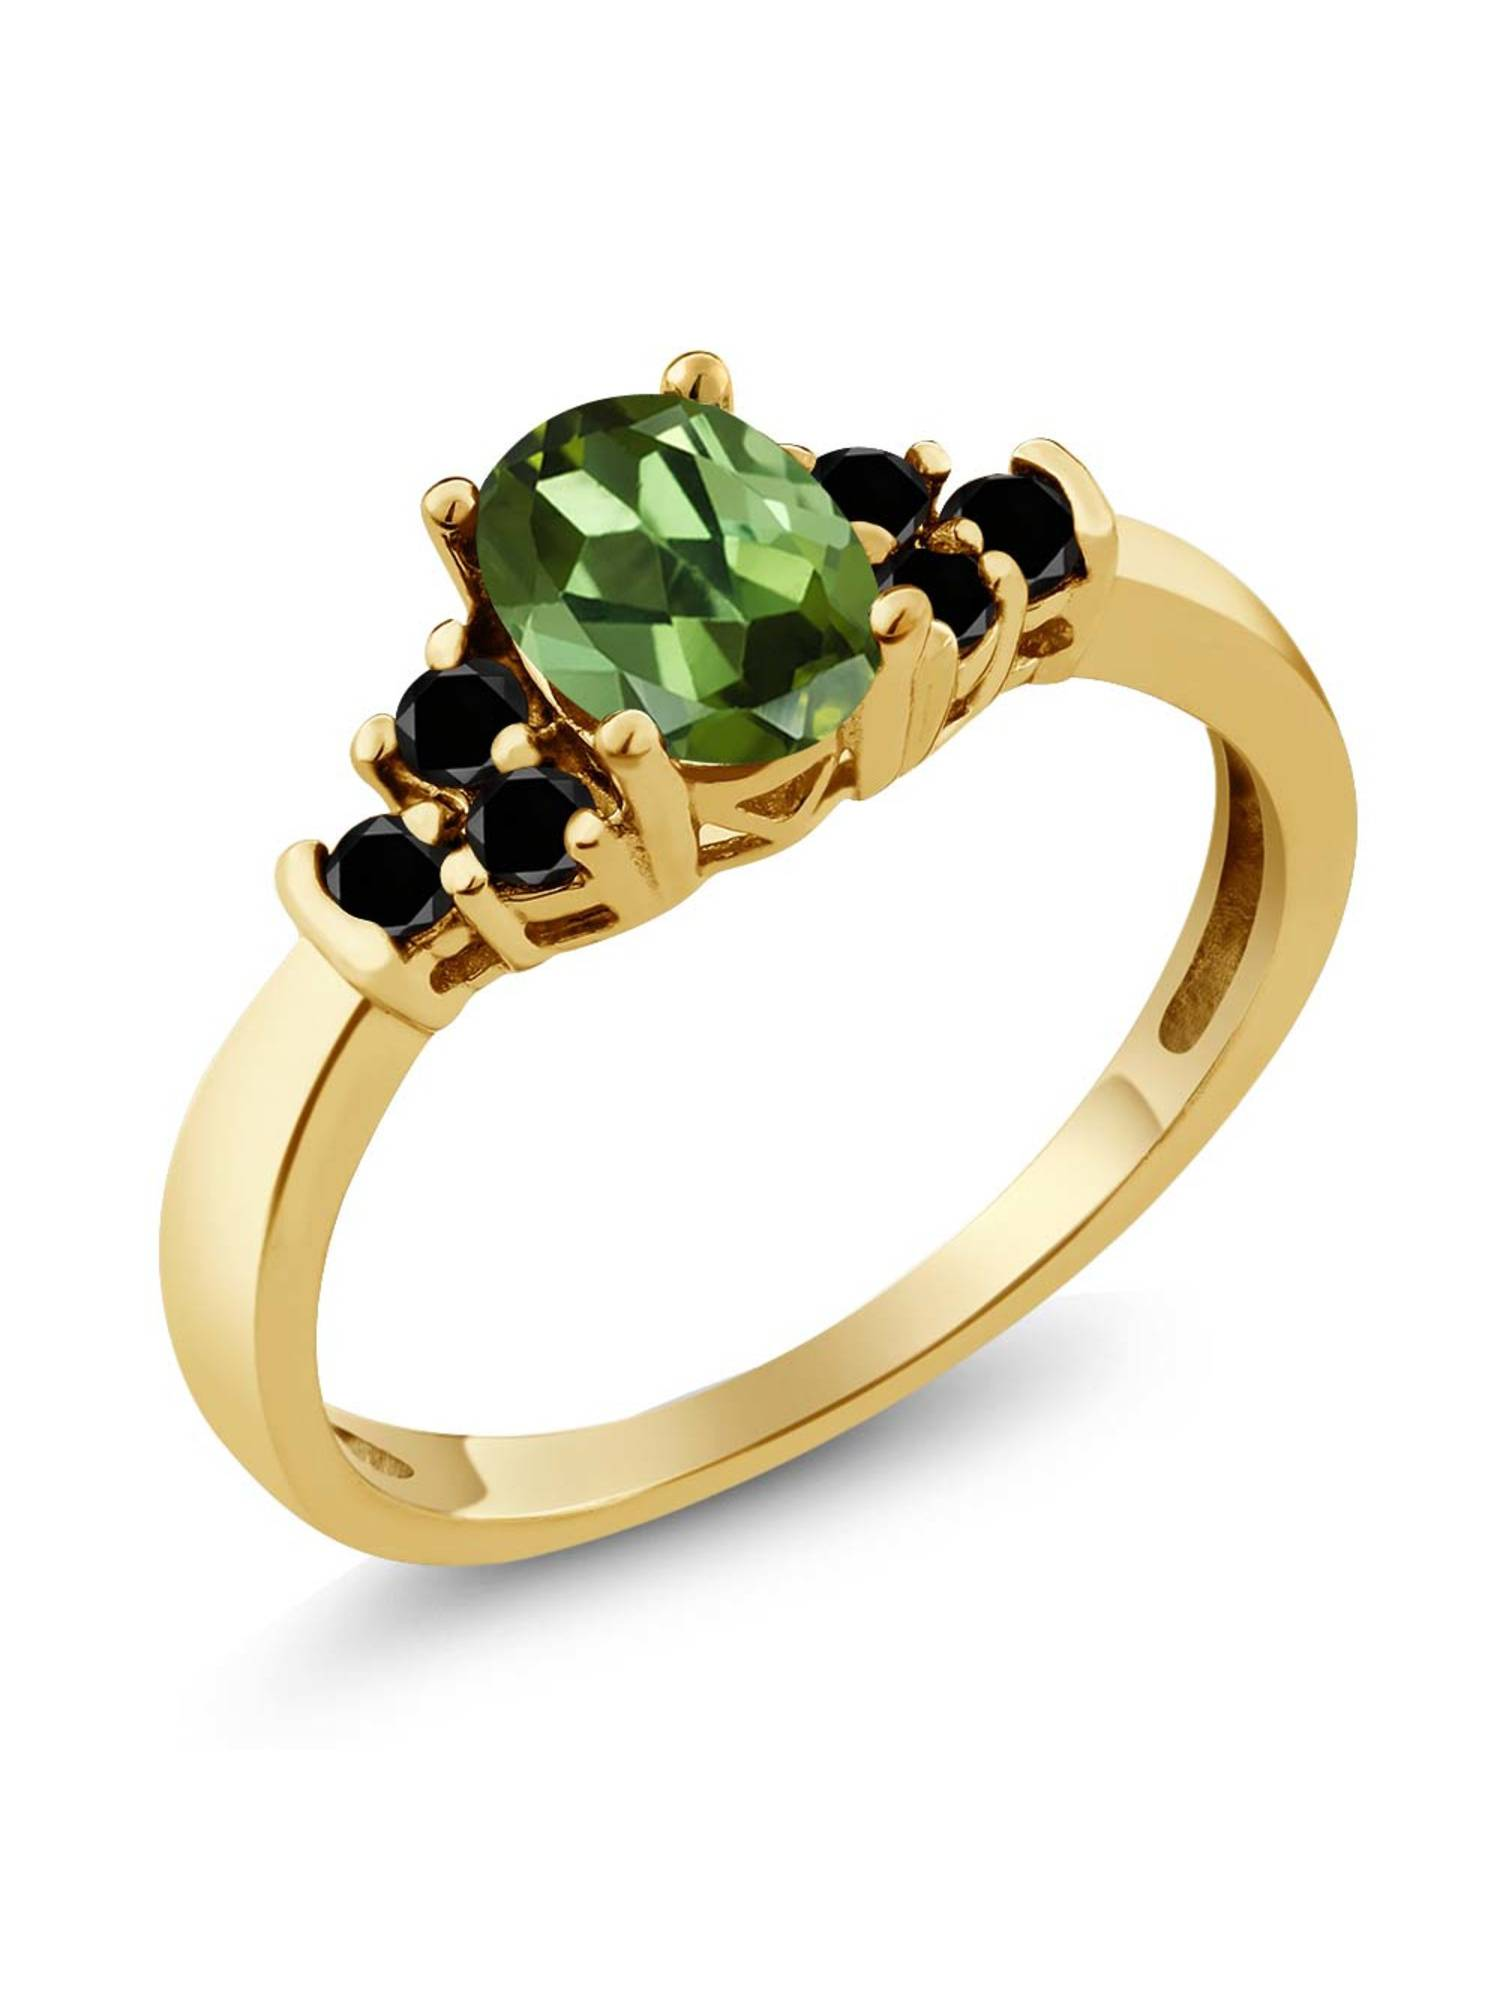 0.76 Ct Oval Green Tourmaline Black Diamond 18K Yellow Gold Plated Silver Ring by